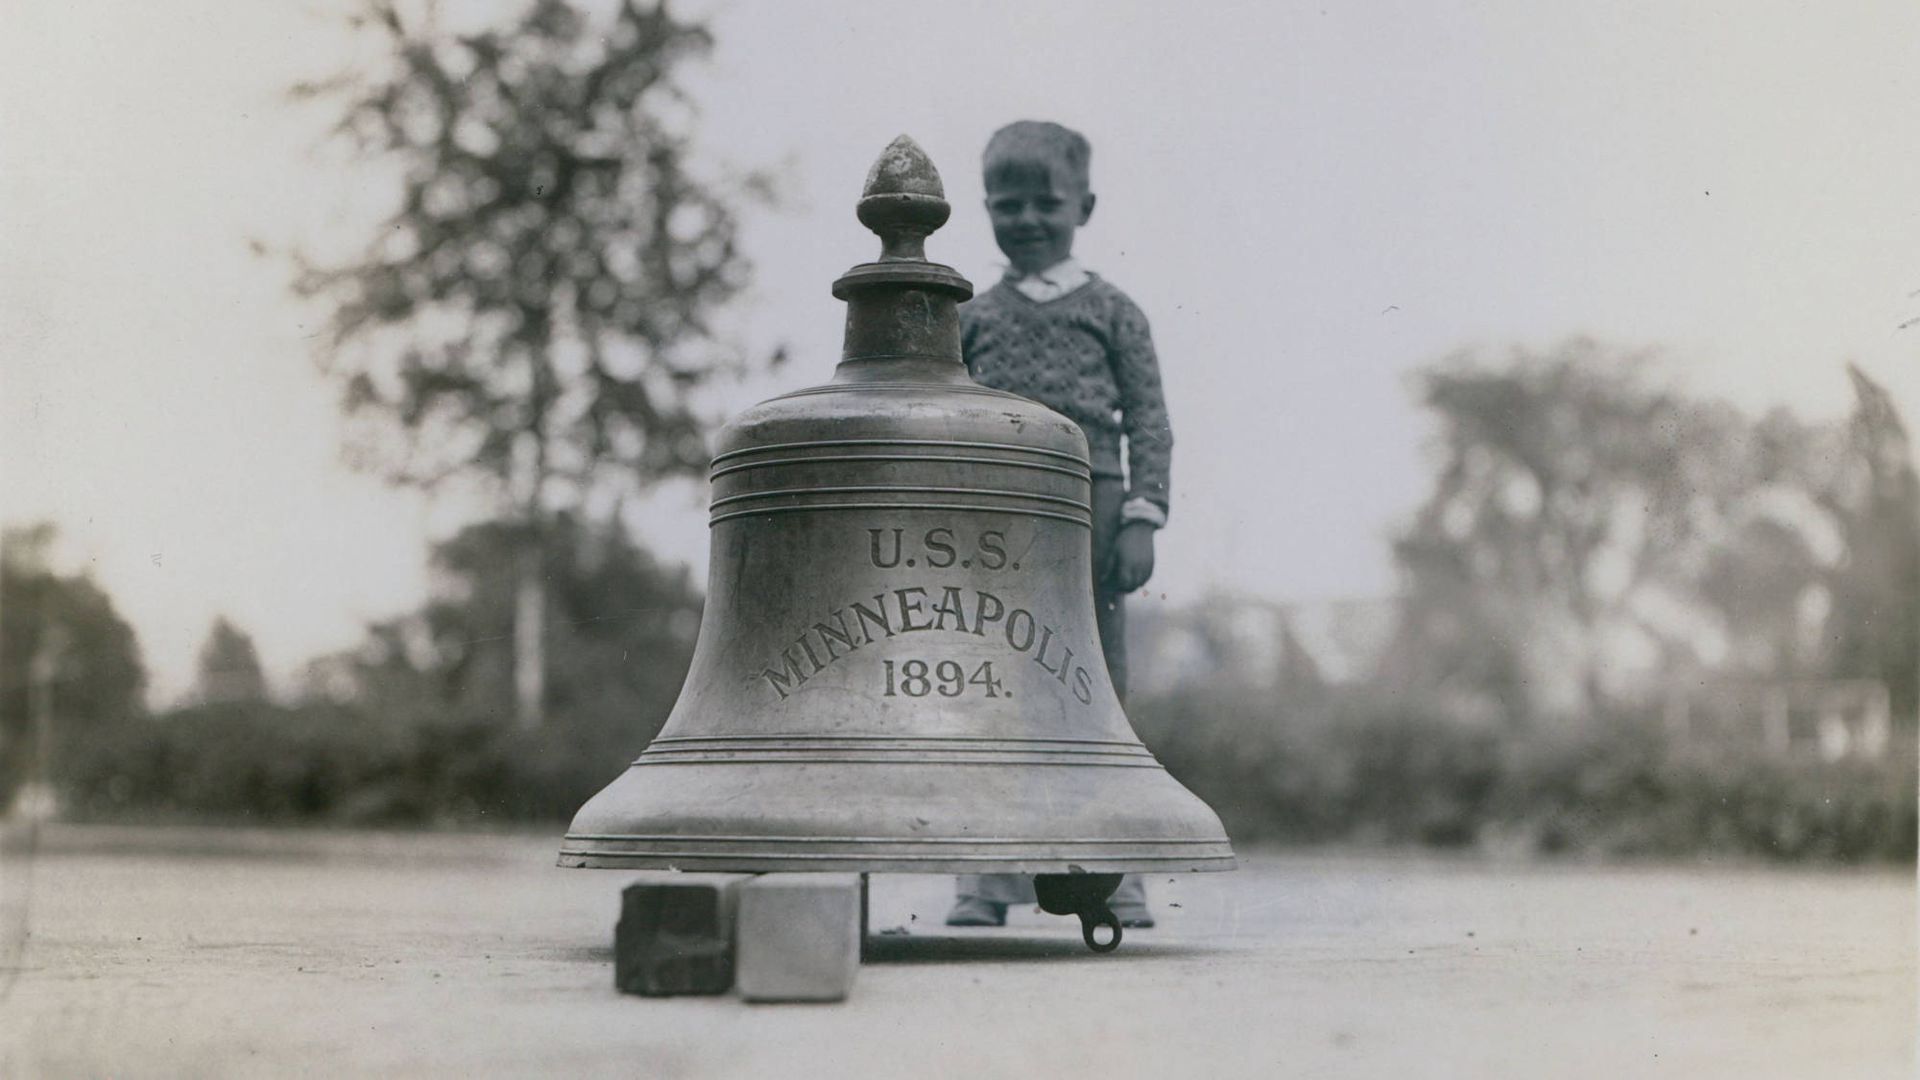 A historic bell from the U.S. Navy